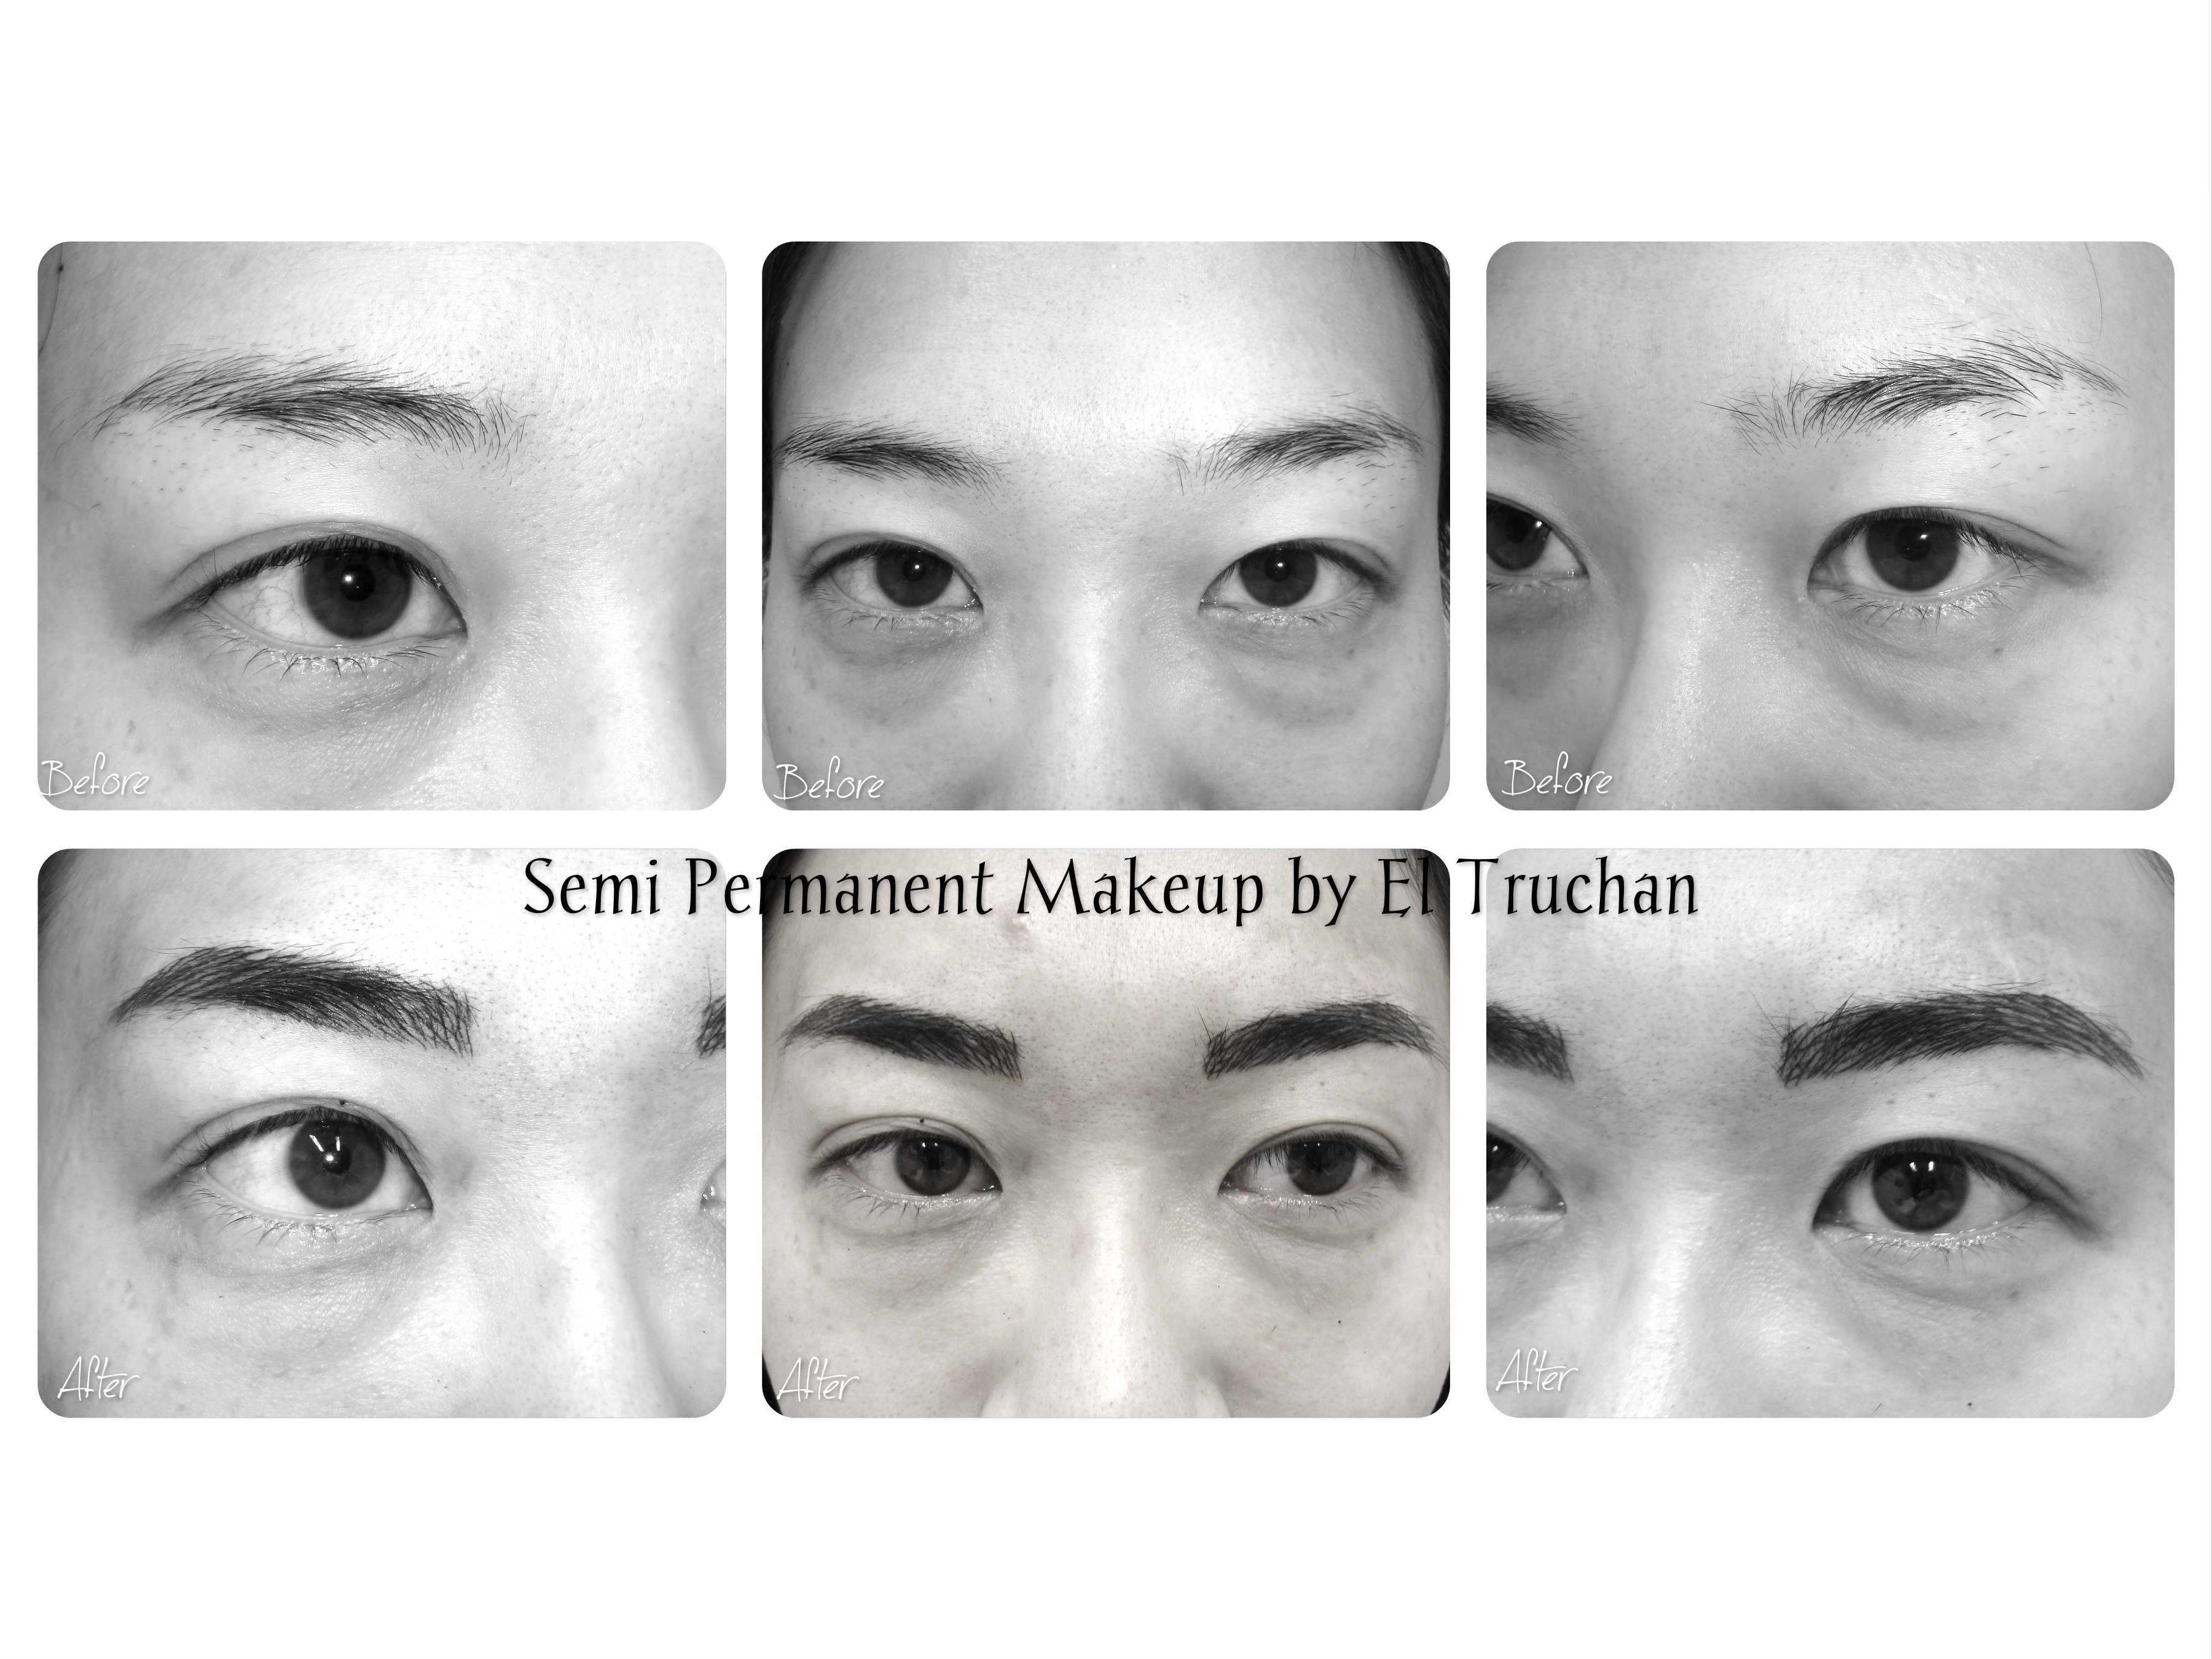 Permanent Makeup Eyebrows by El Truchan